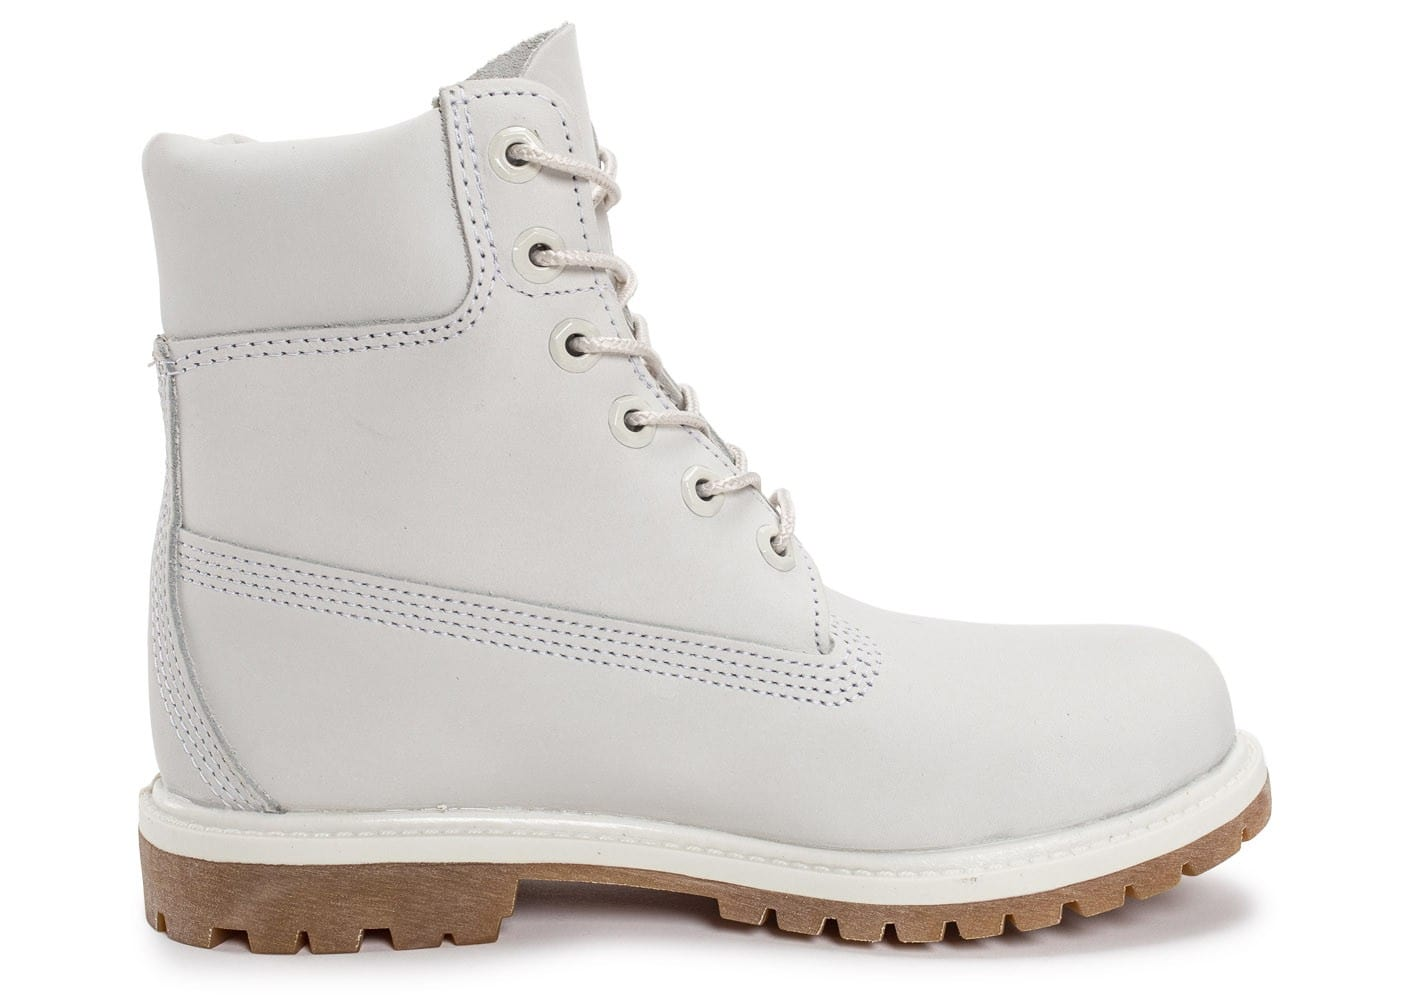 timberland 6 inch premium boots blanche chaussures femme. Black Bedroom Furniture Sets. Home Design Ideas